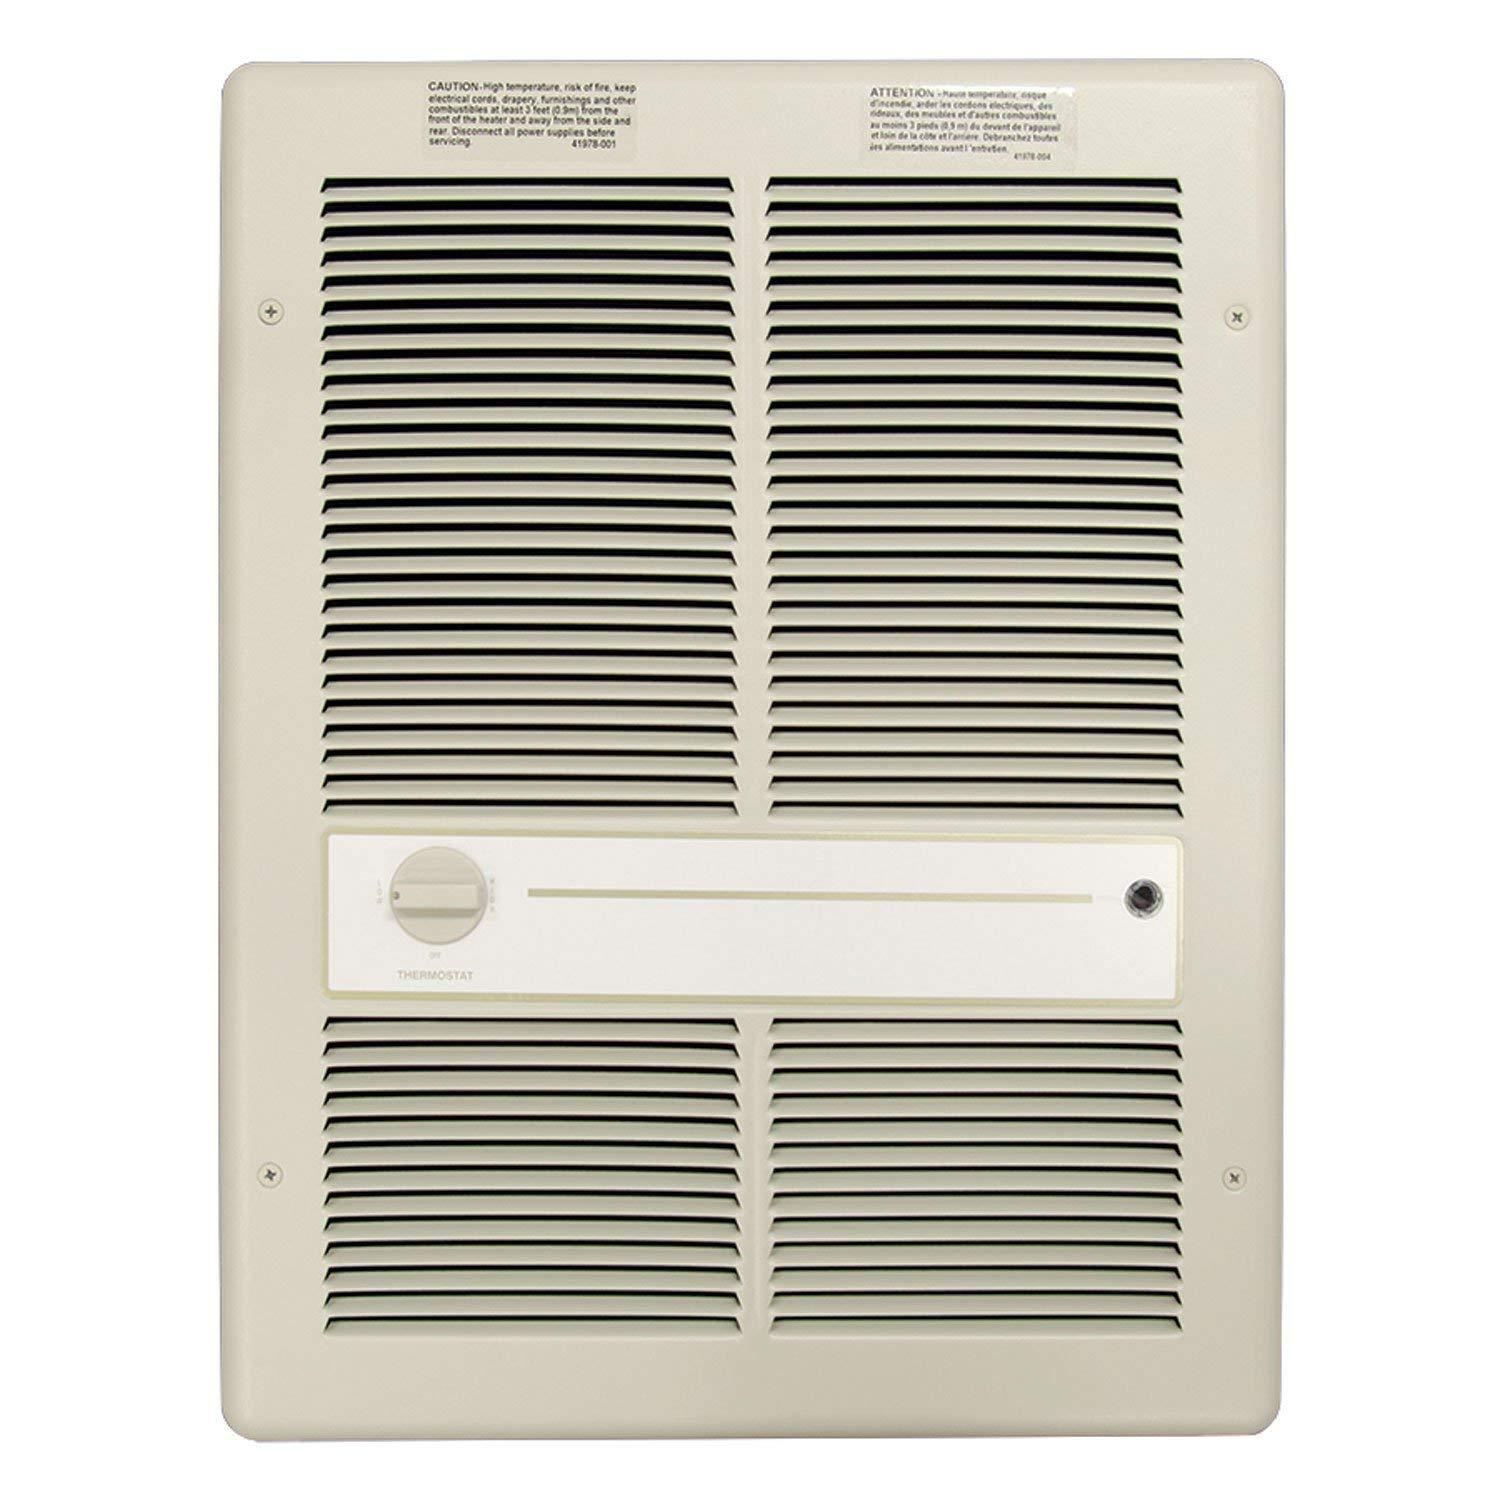 TPI 4800W 277V 3310 Series Fan Forced Wall Heater (Ivory) - Without Summer Fan Switch - 2 Pole Thermostat - G3317T2RP